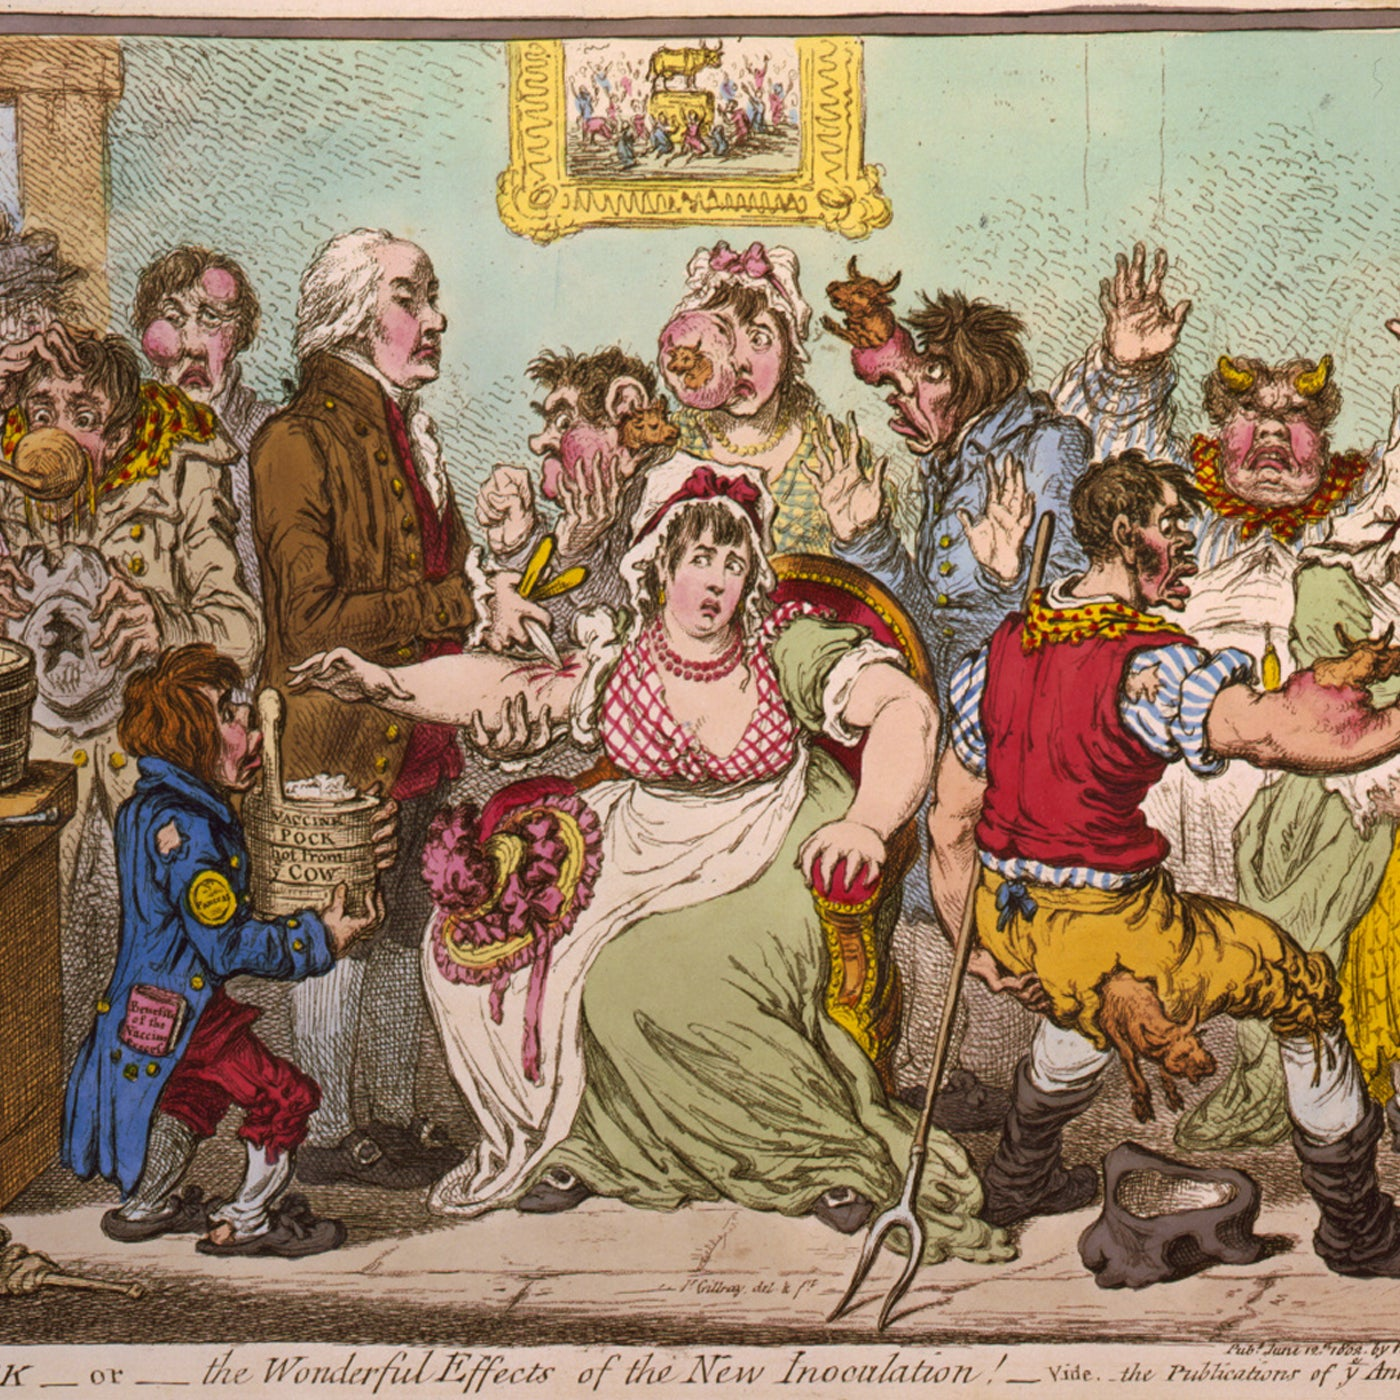 18th century editorial illustration of people with diseases